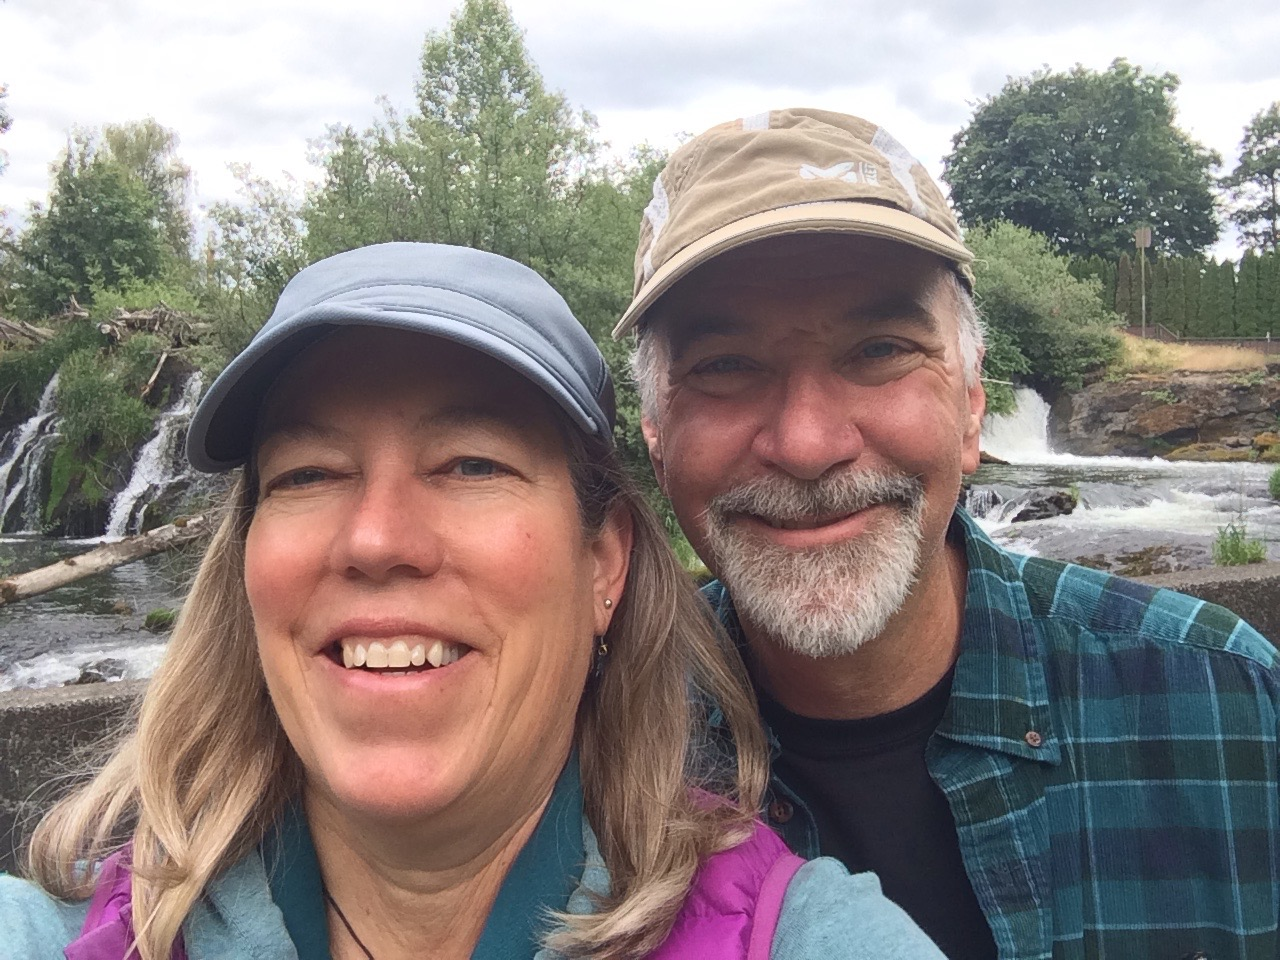 New to Olympia, my husband Keith and I take a selfie at Tumwater Falls.